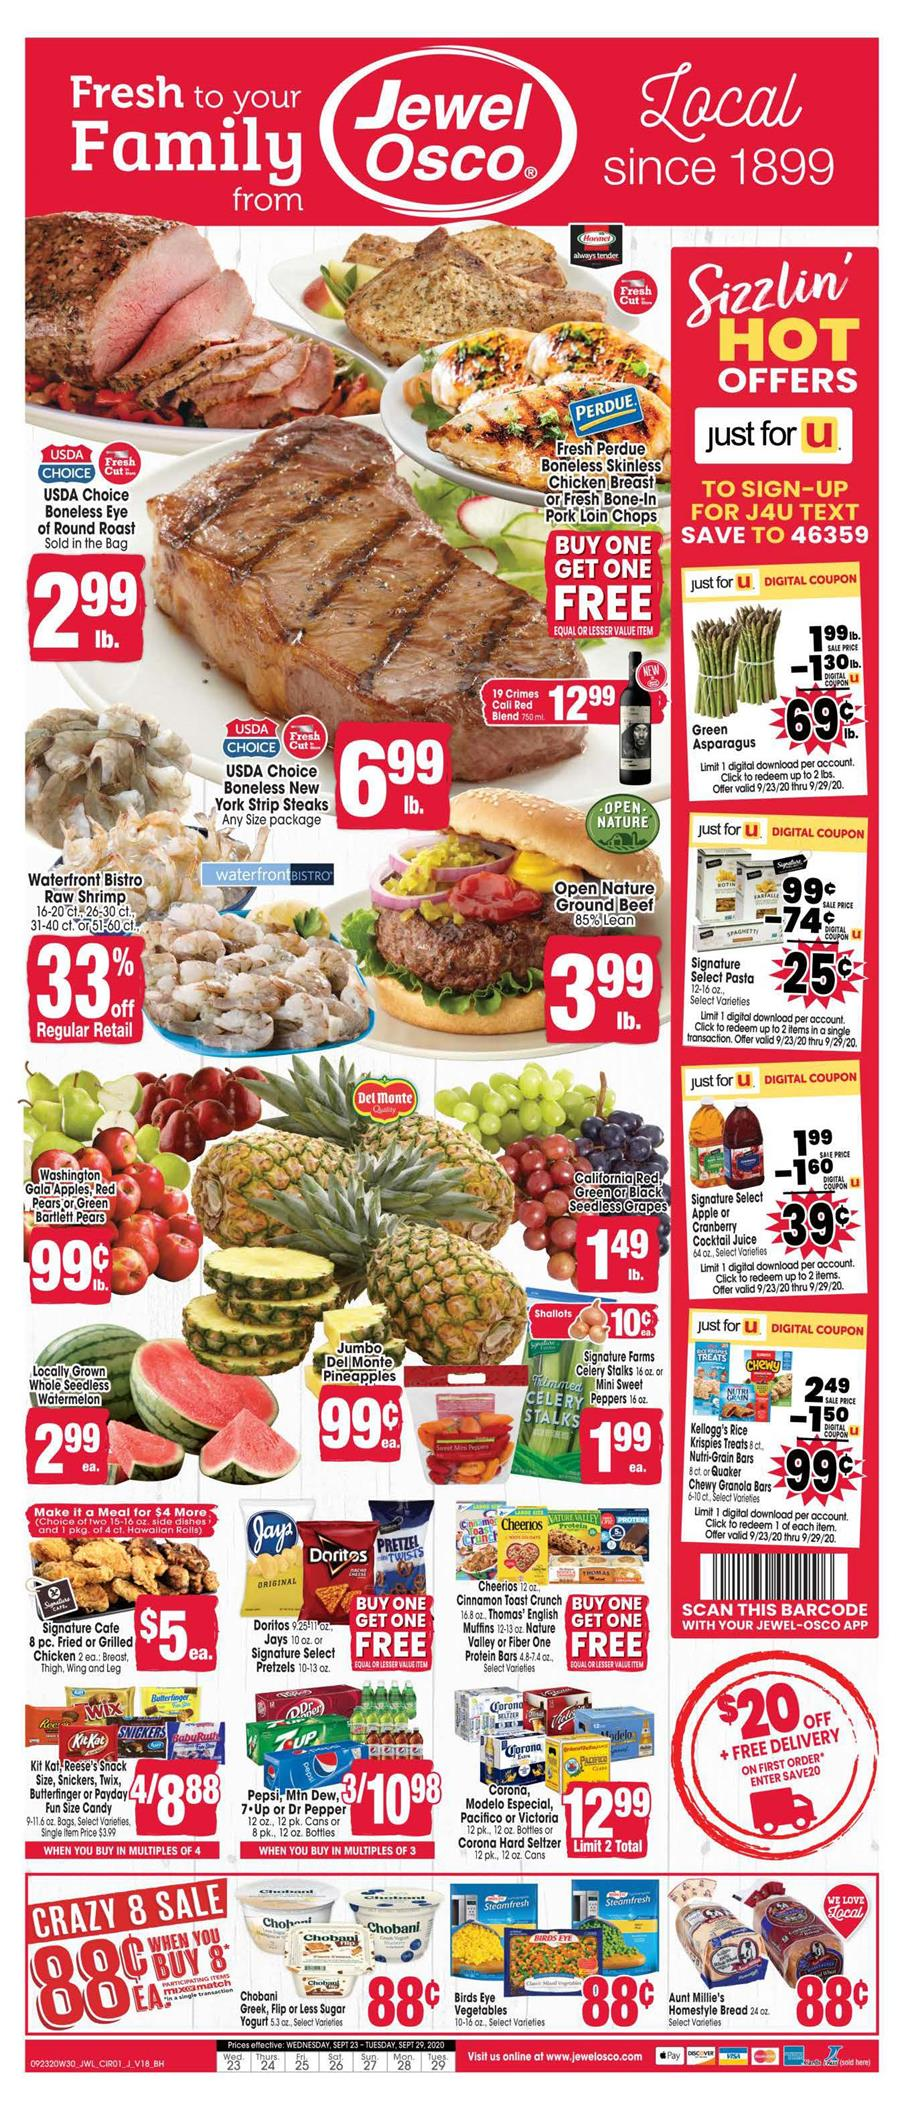 jewel osco final september ad valid from sep 23 29 2020